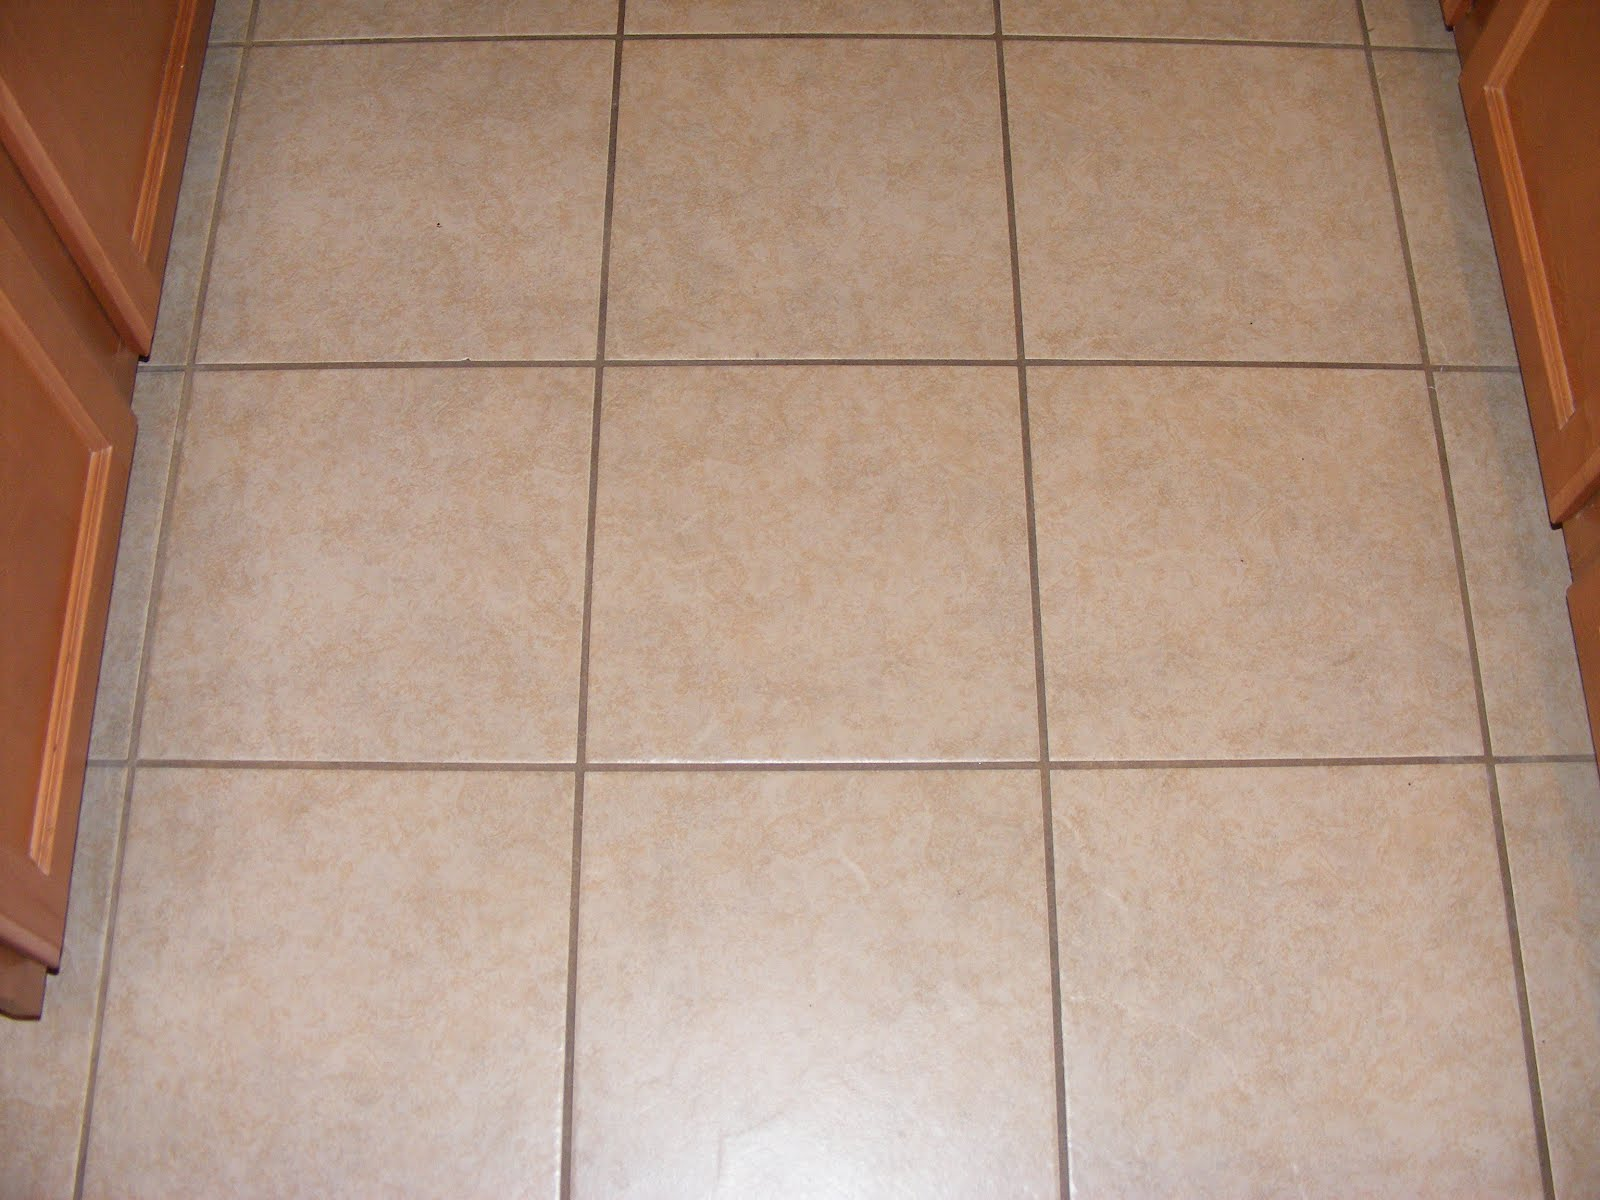 Amazing Grout Cleaner - How to clean bathroom floor tile grout